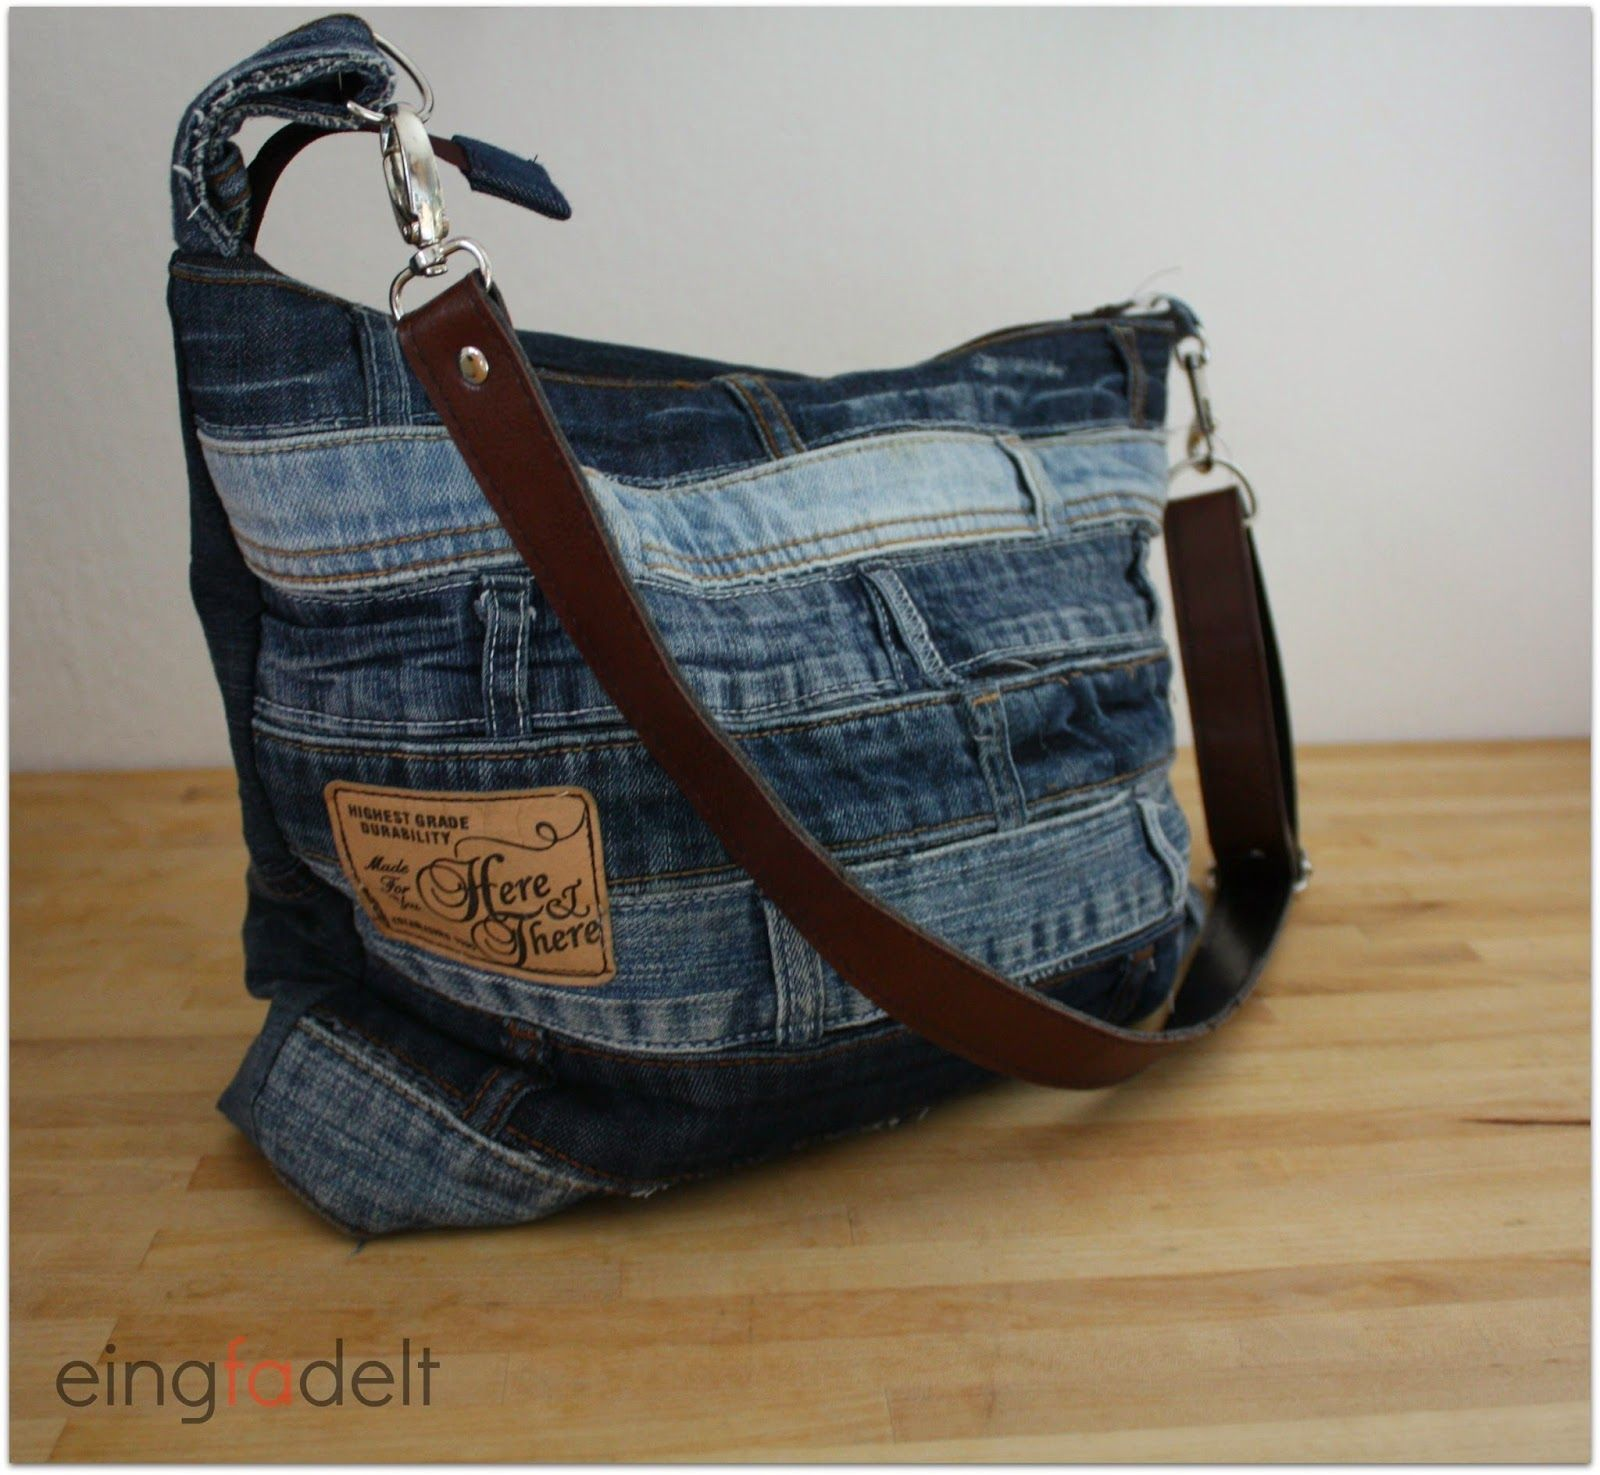 tasche aus jeanshose bag made from pair of jeans upcycling jean cycle pinterest jeans. Black Bedroom Furniture Sets. Home Design Ideas